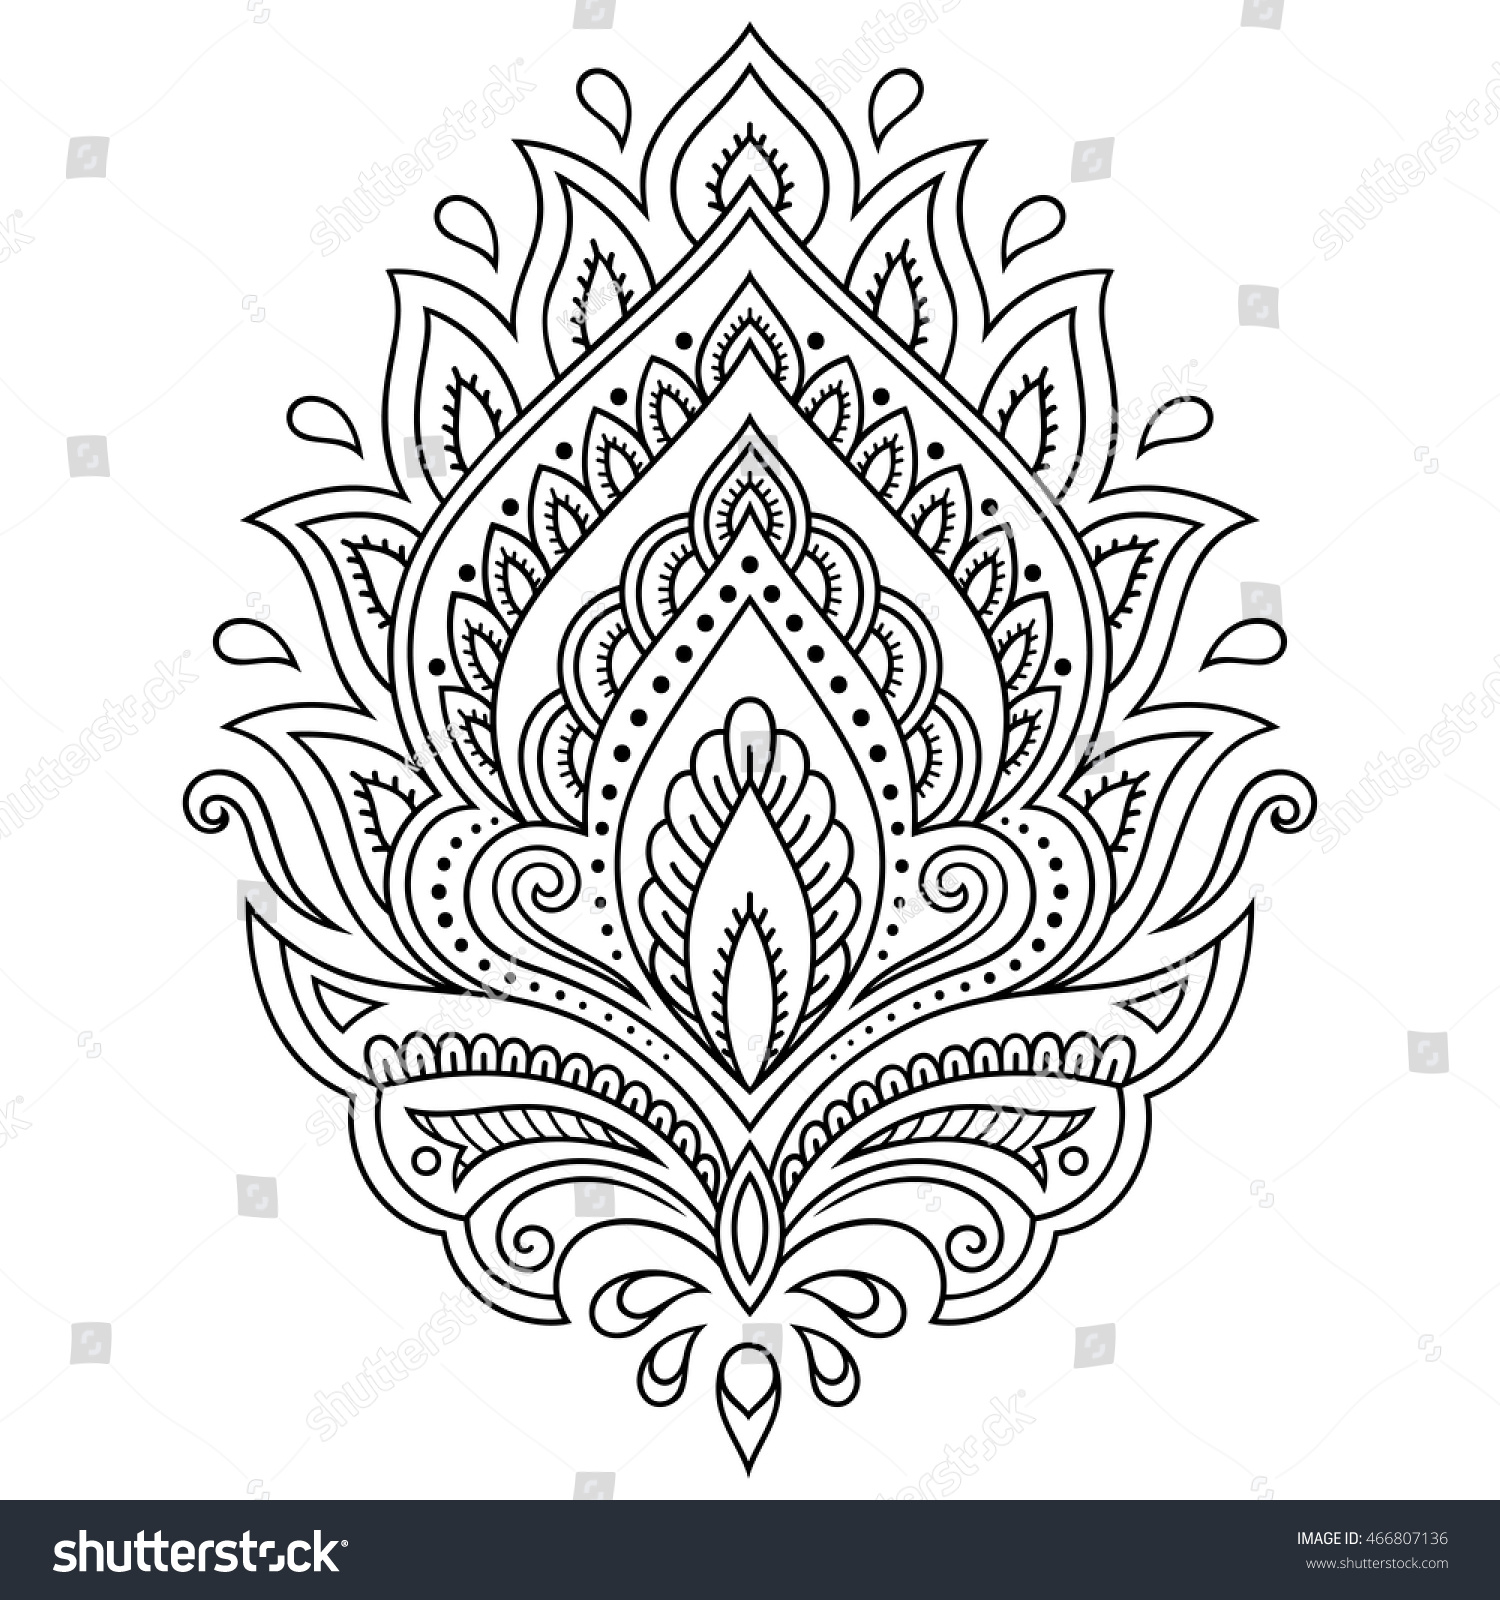 Henna Tattoo Flower Template In Indian Style: Henna Tattoo Flower Template Indian Style Stock Vector